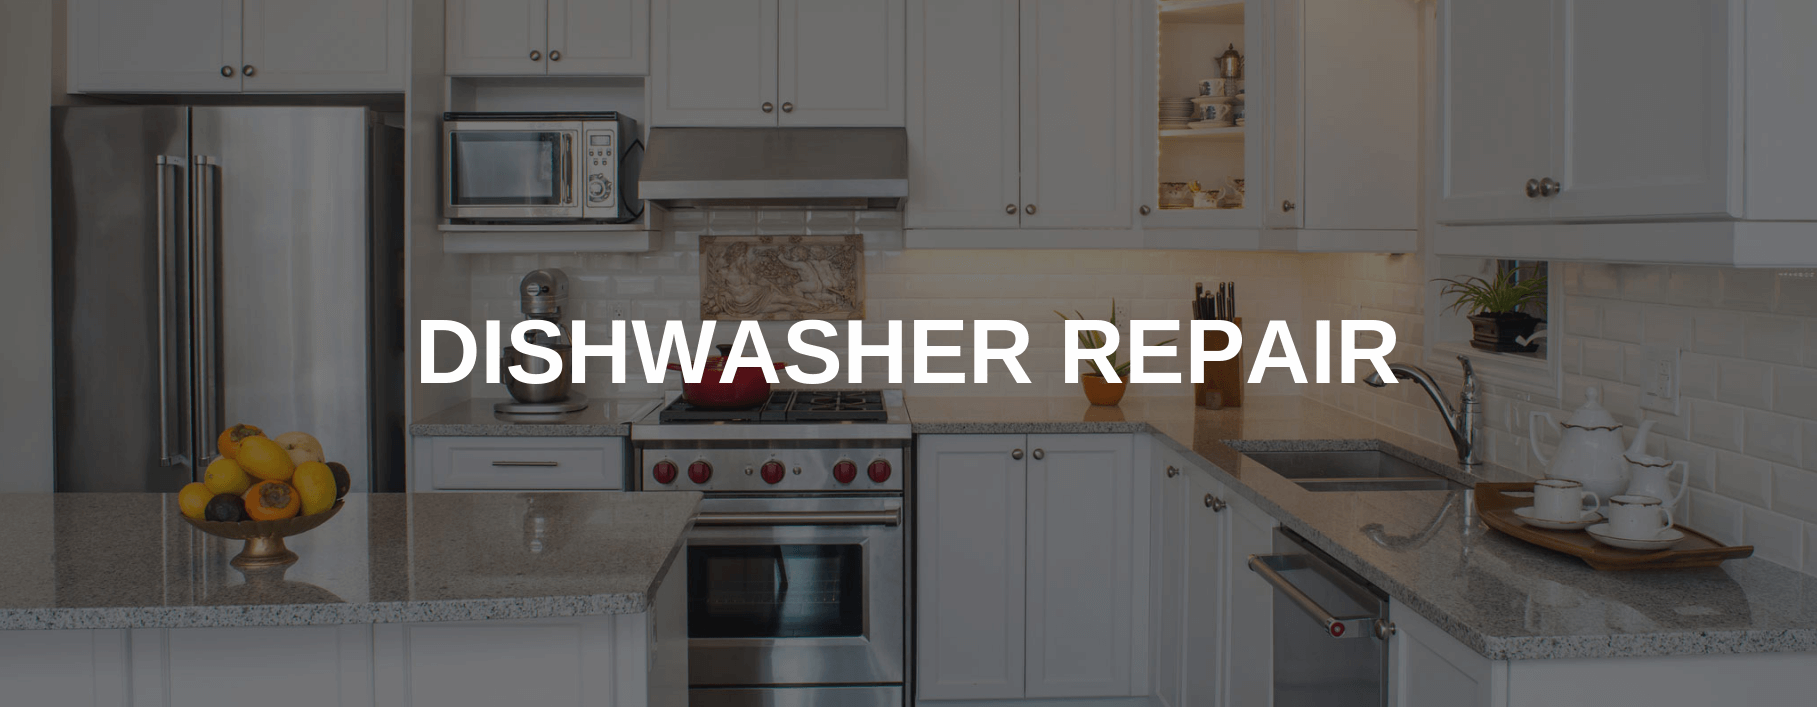 dishwasher repair middletown